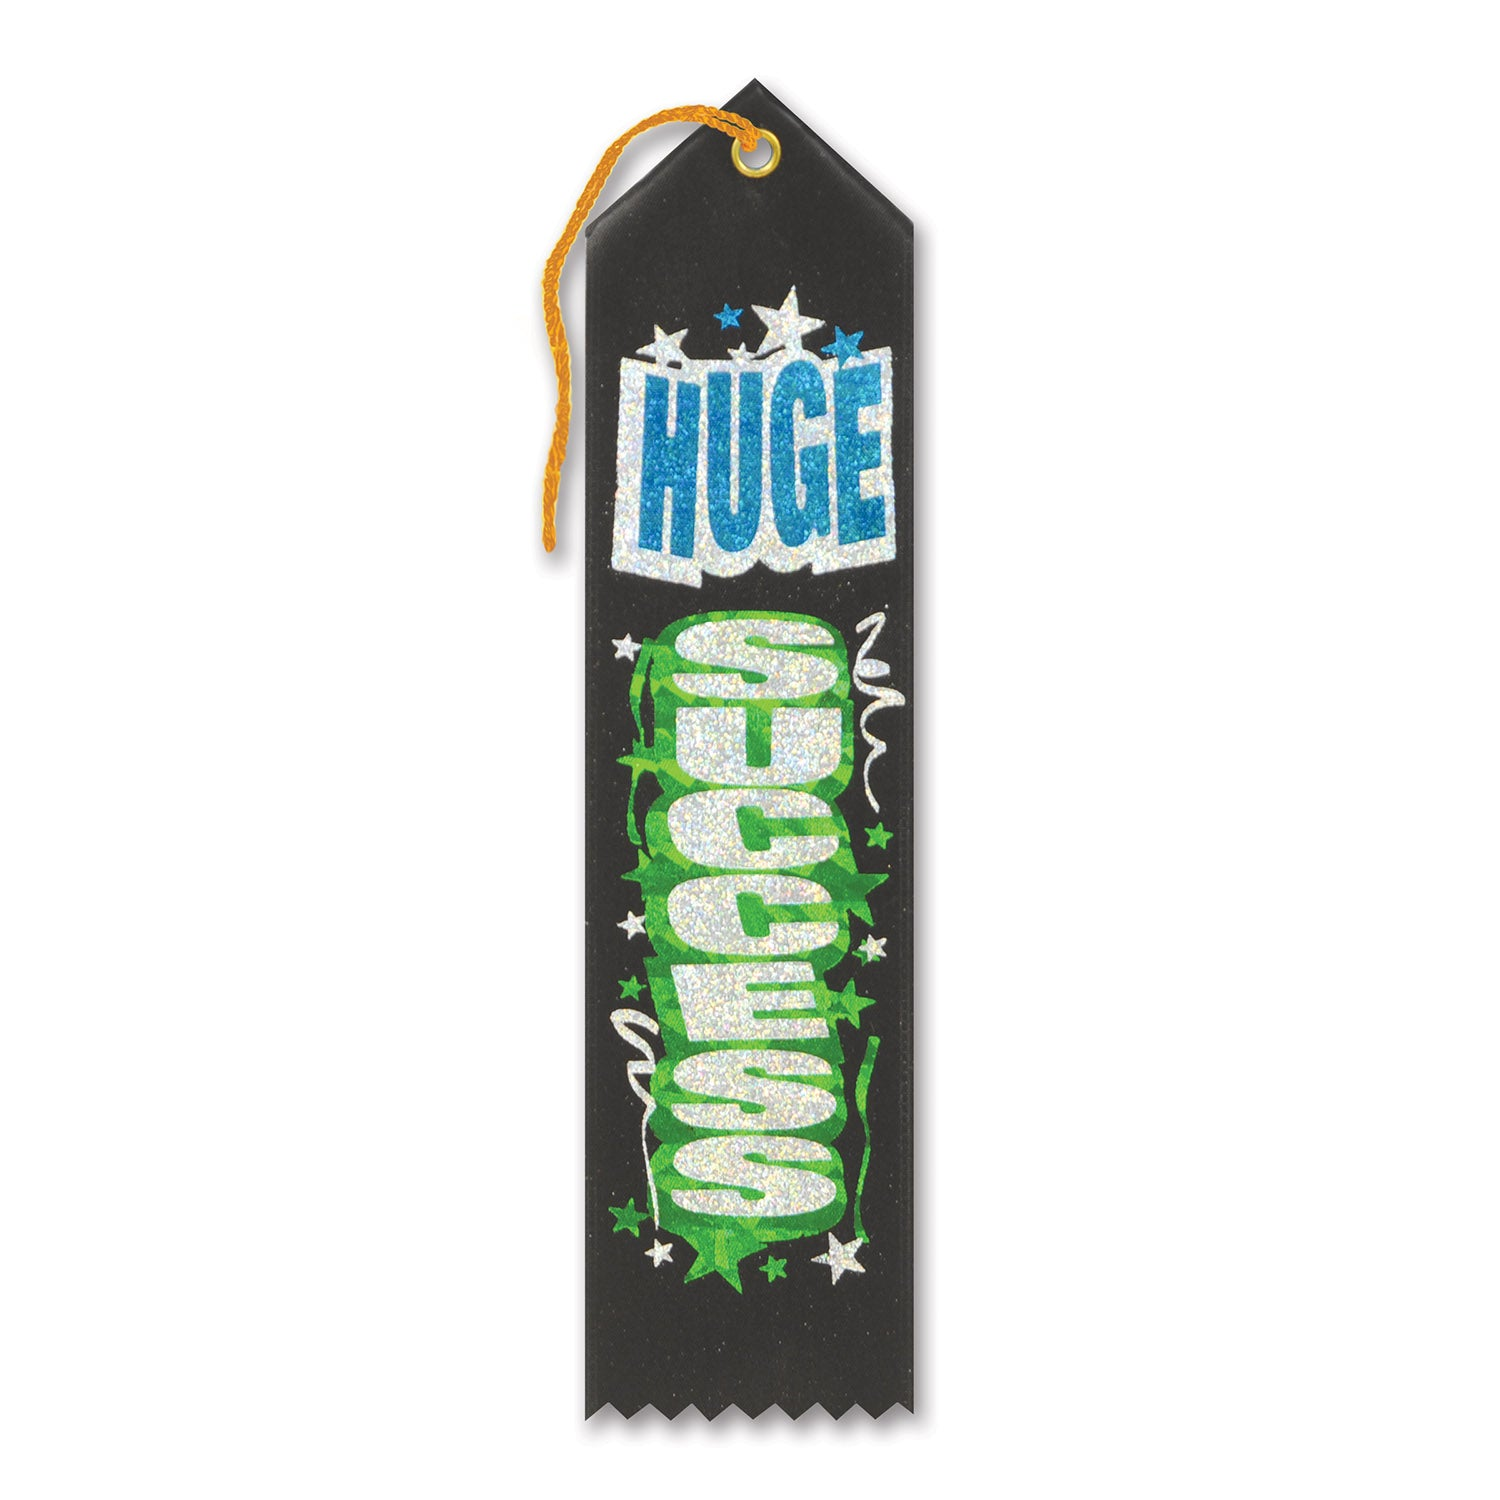 Huge Success Award Ribbon by Beistle - School Awards and Supplies Decorations